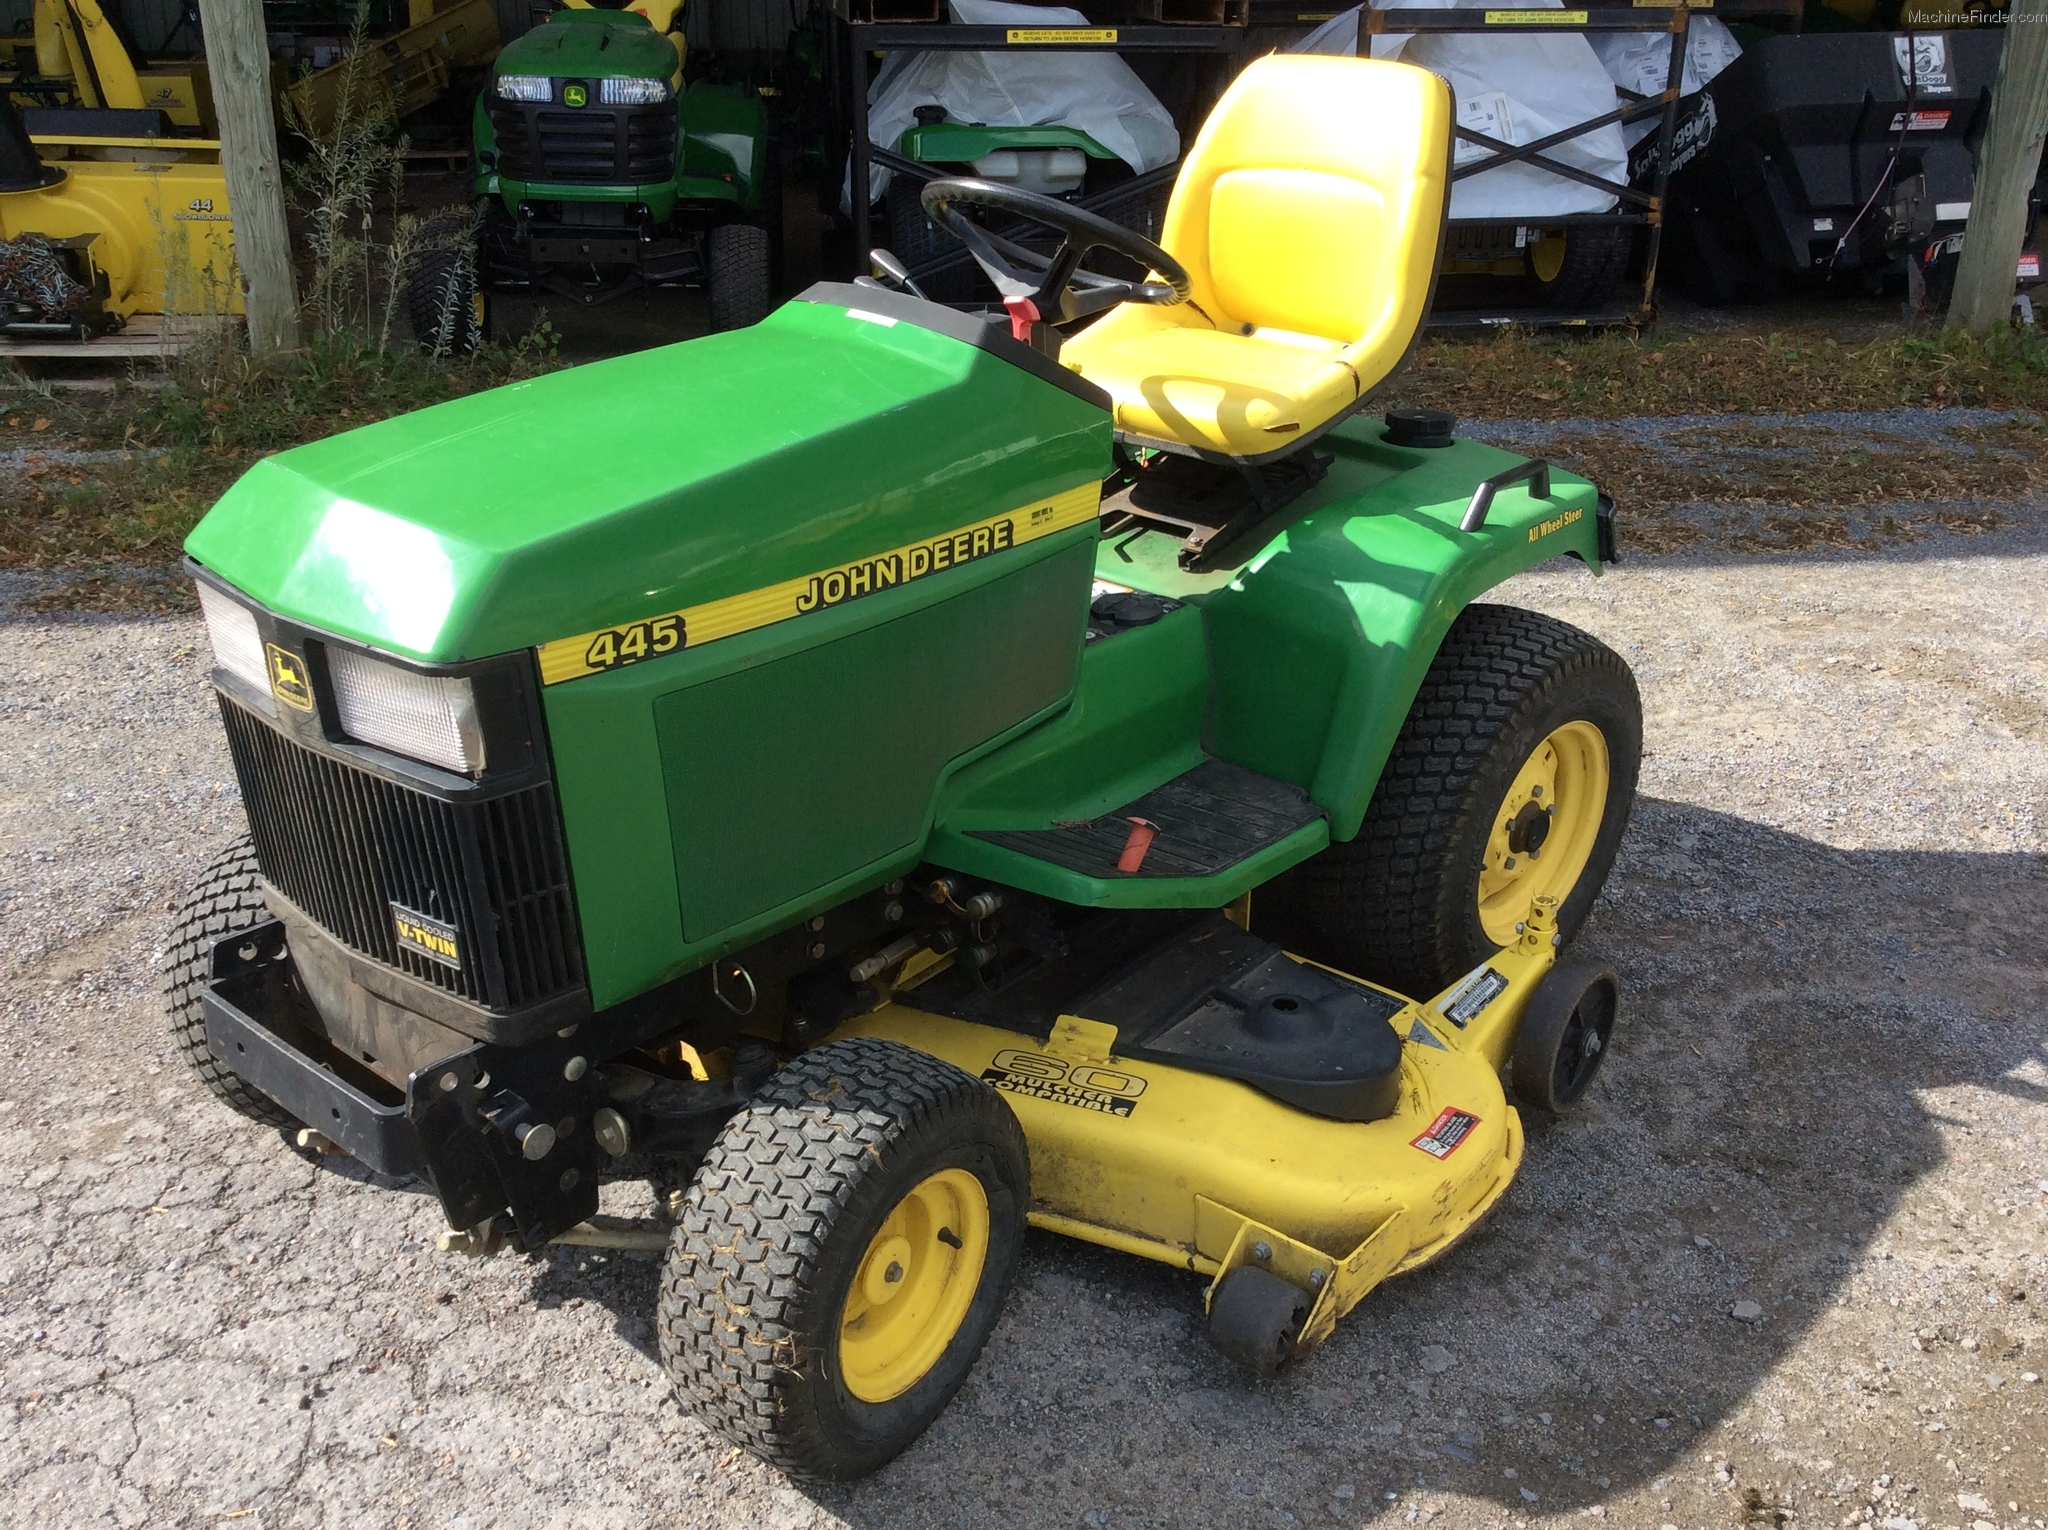 1999 john deere 445 lawn garden and commercial mowing john deere machinefinder for Bairs lawn and garden